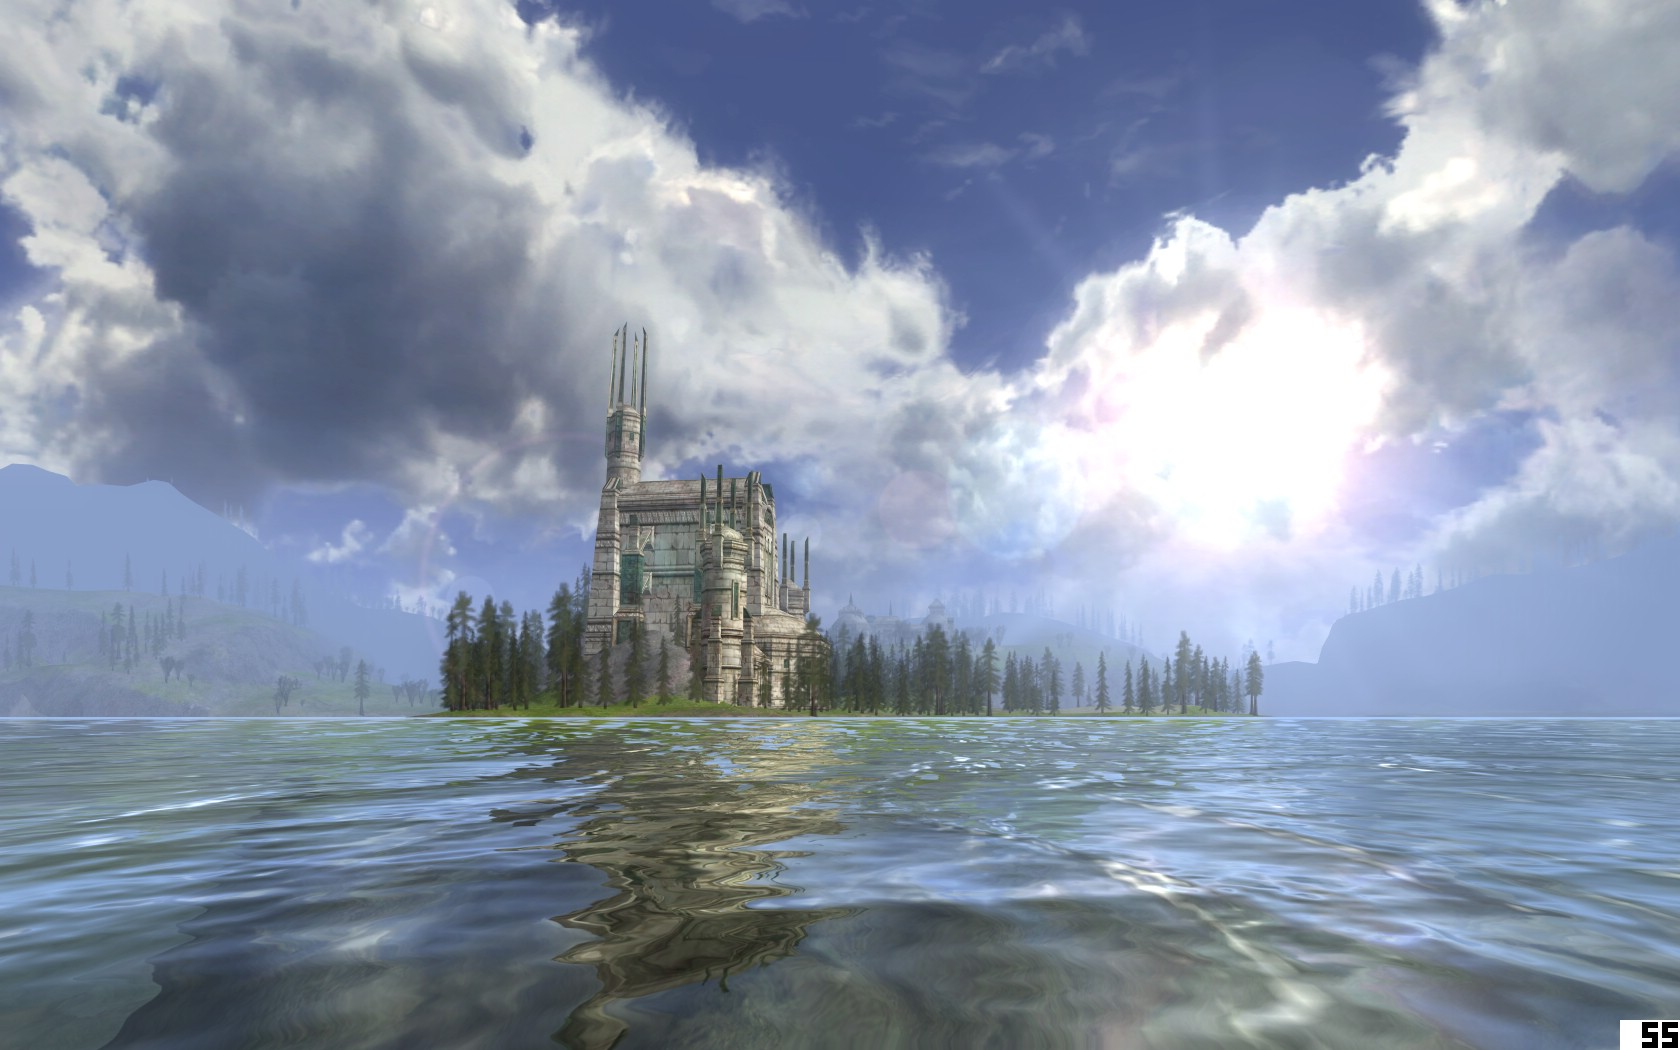 Hd Background Wallpaper 800x600: LOTRO Wallpaper Widescreen